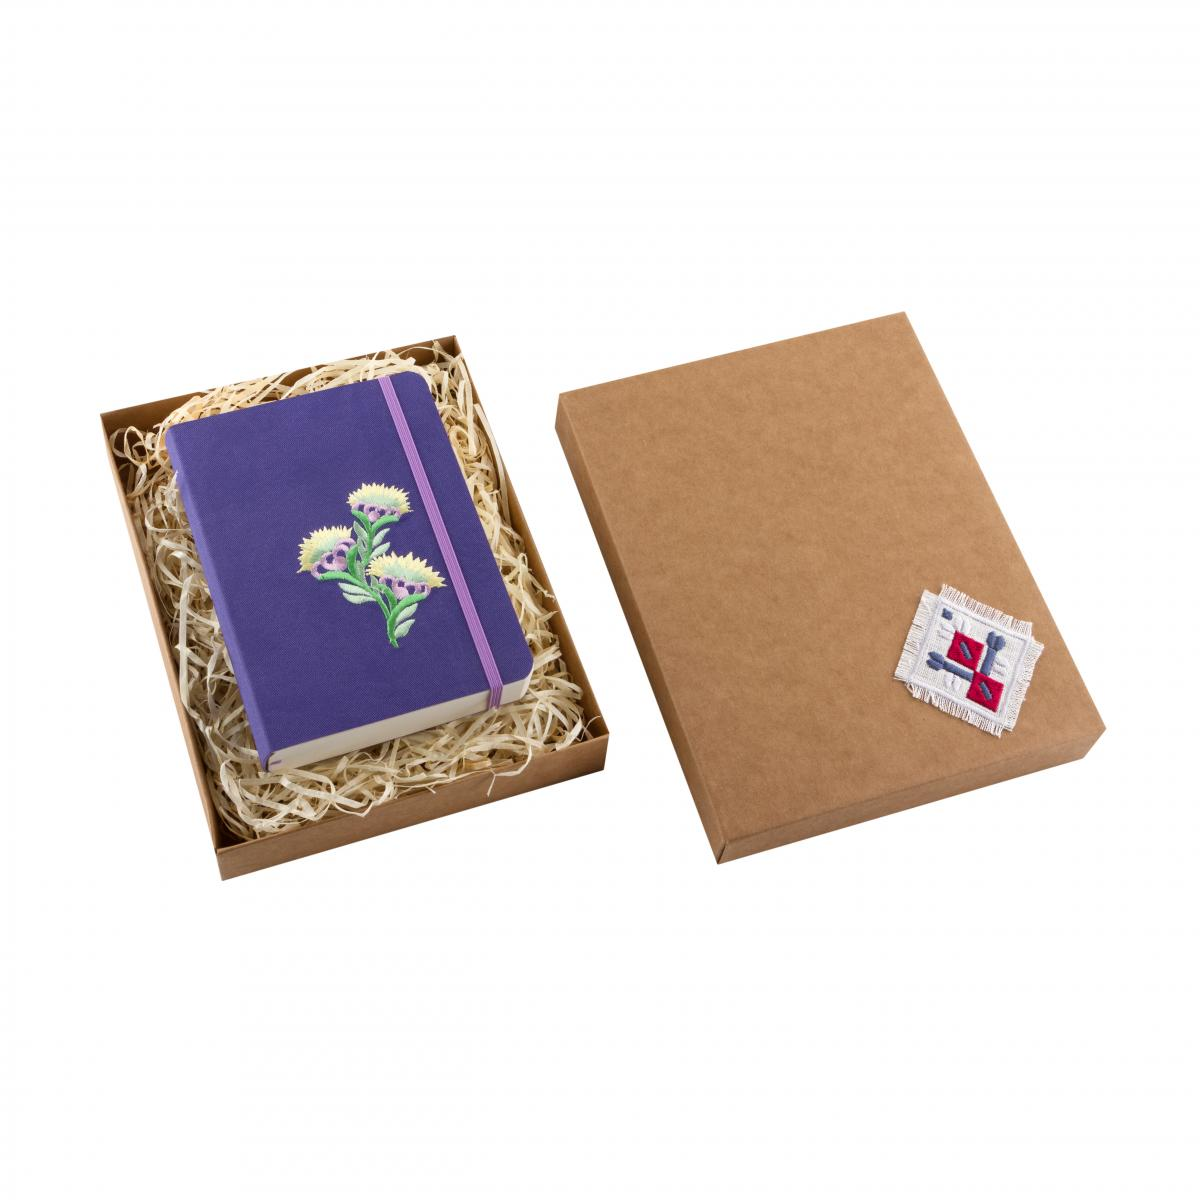 "Eco-leather notebook with embroidery ""Flower of rapeseed"", violet. Photo №3. 